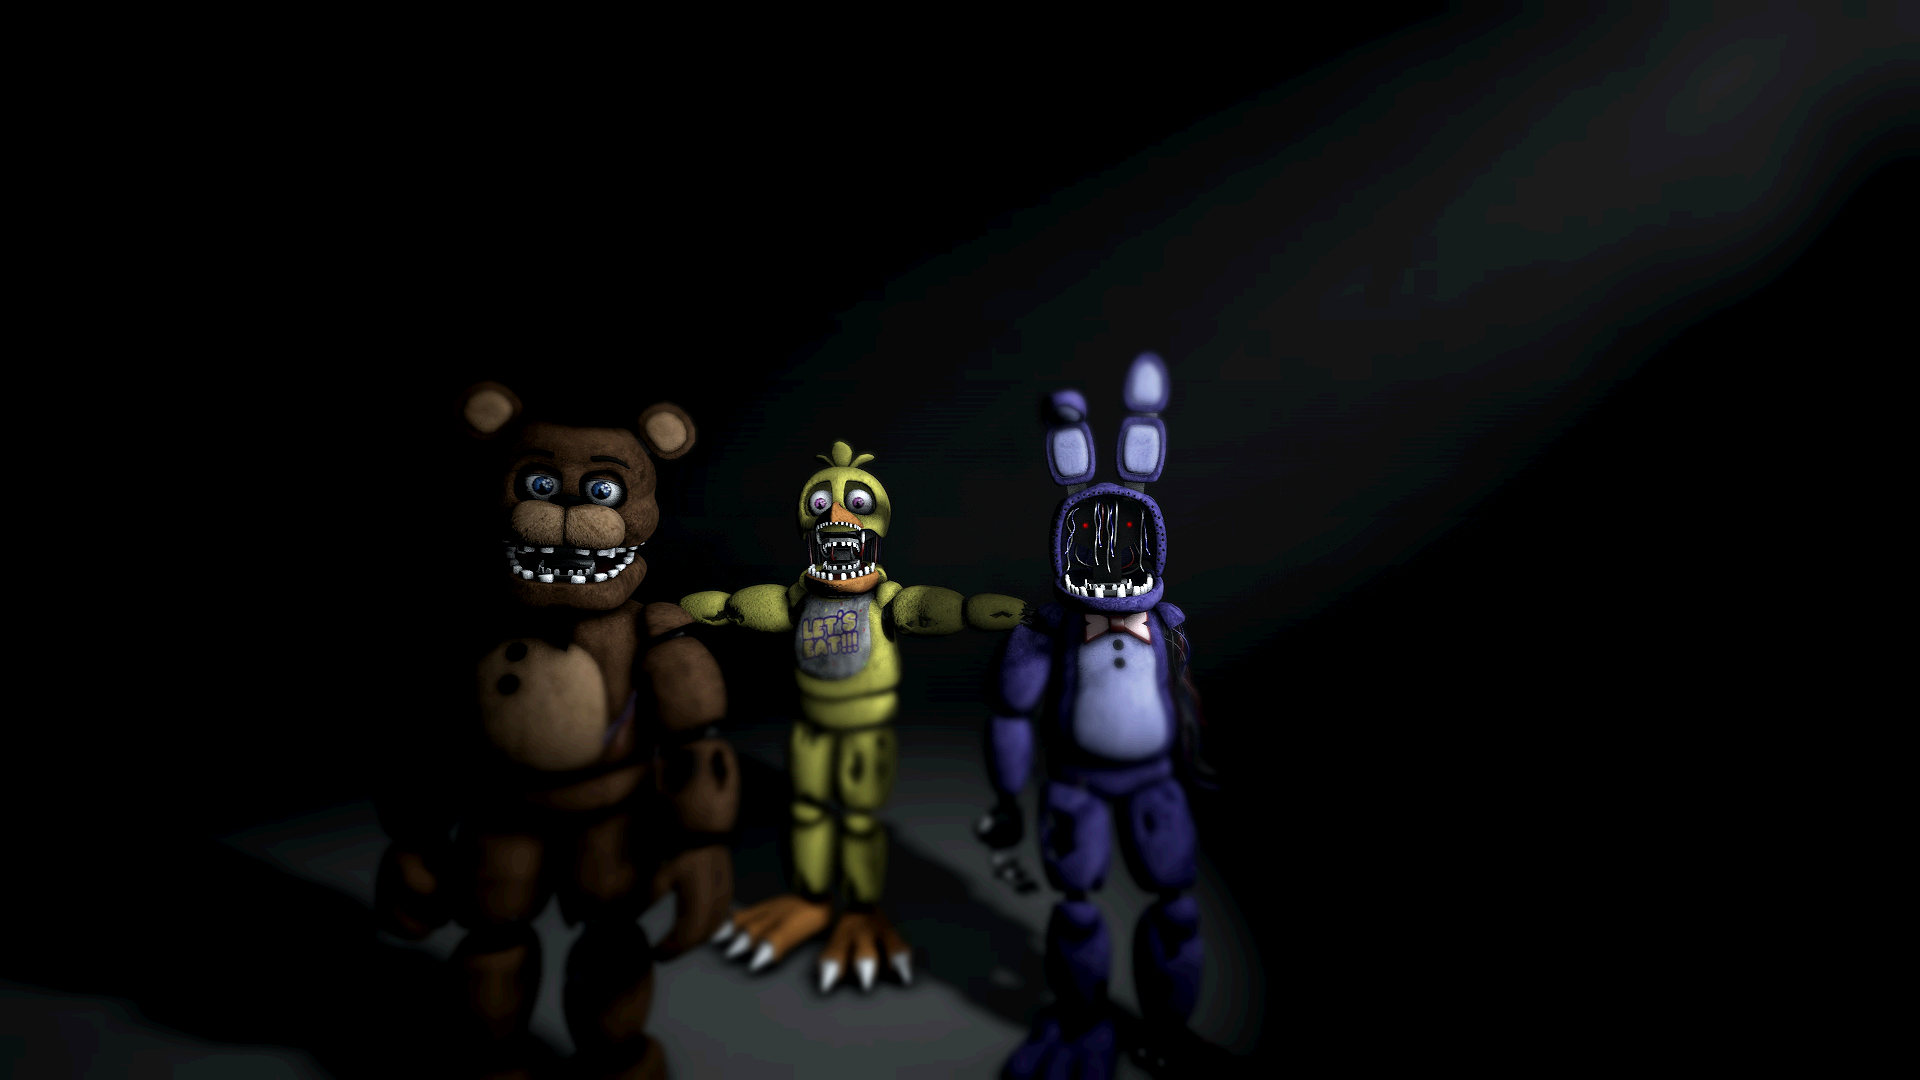 Withered Freddy, Chica, and Bonnie image - Imthepurpleguy - Indie DB